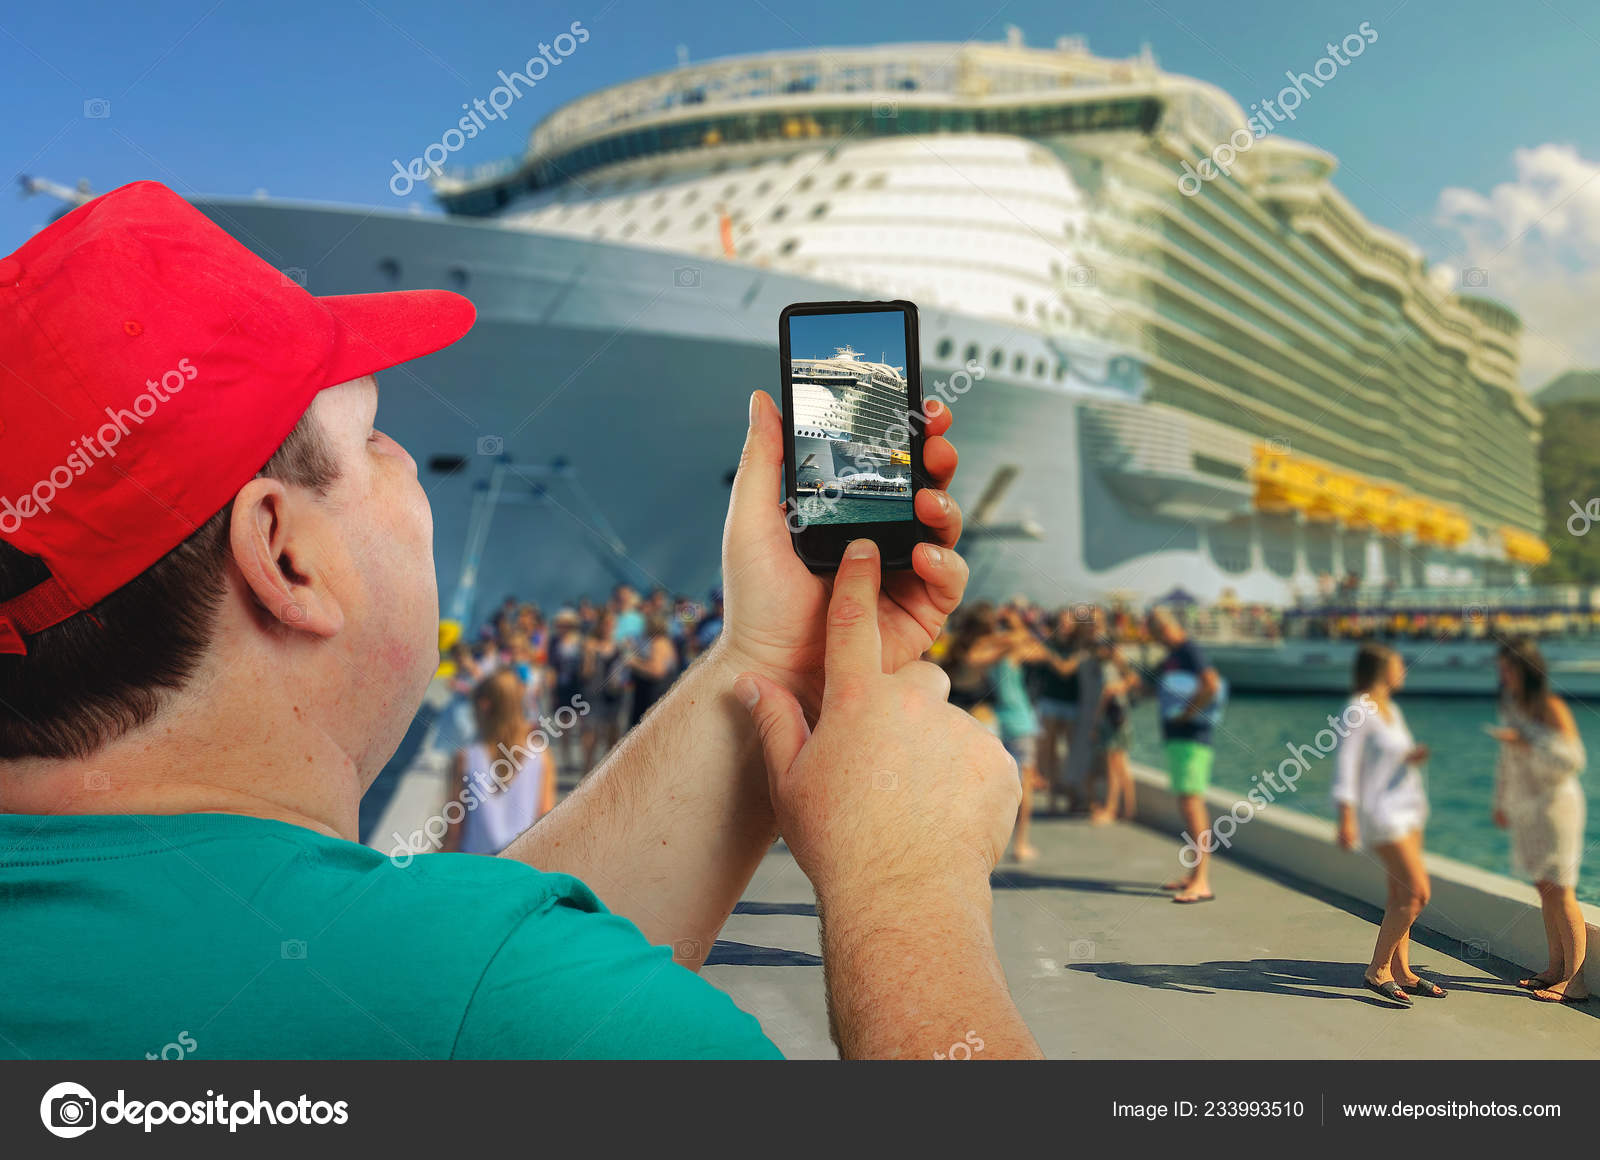 Man photographs a cruise ship arrived at the port